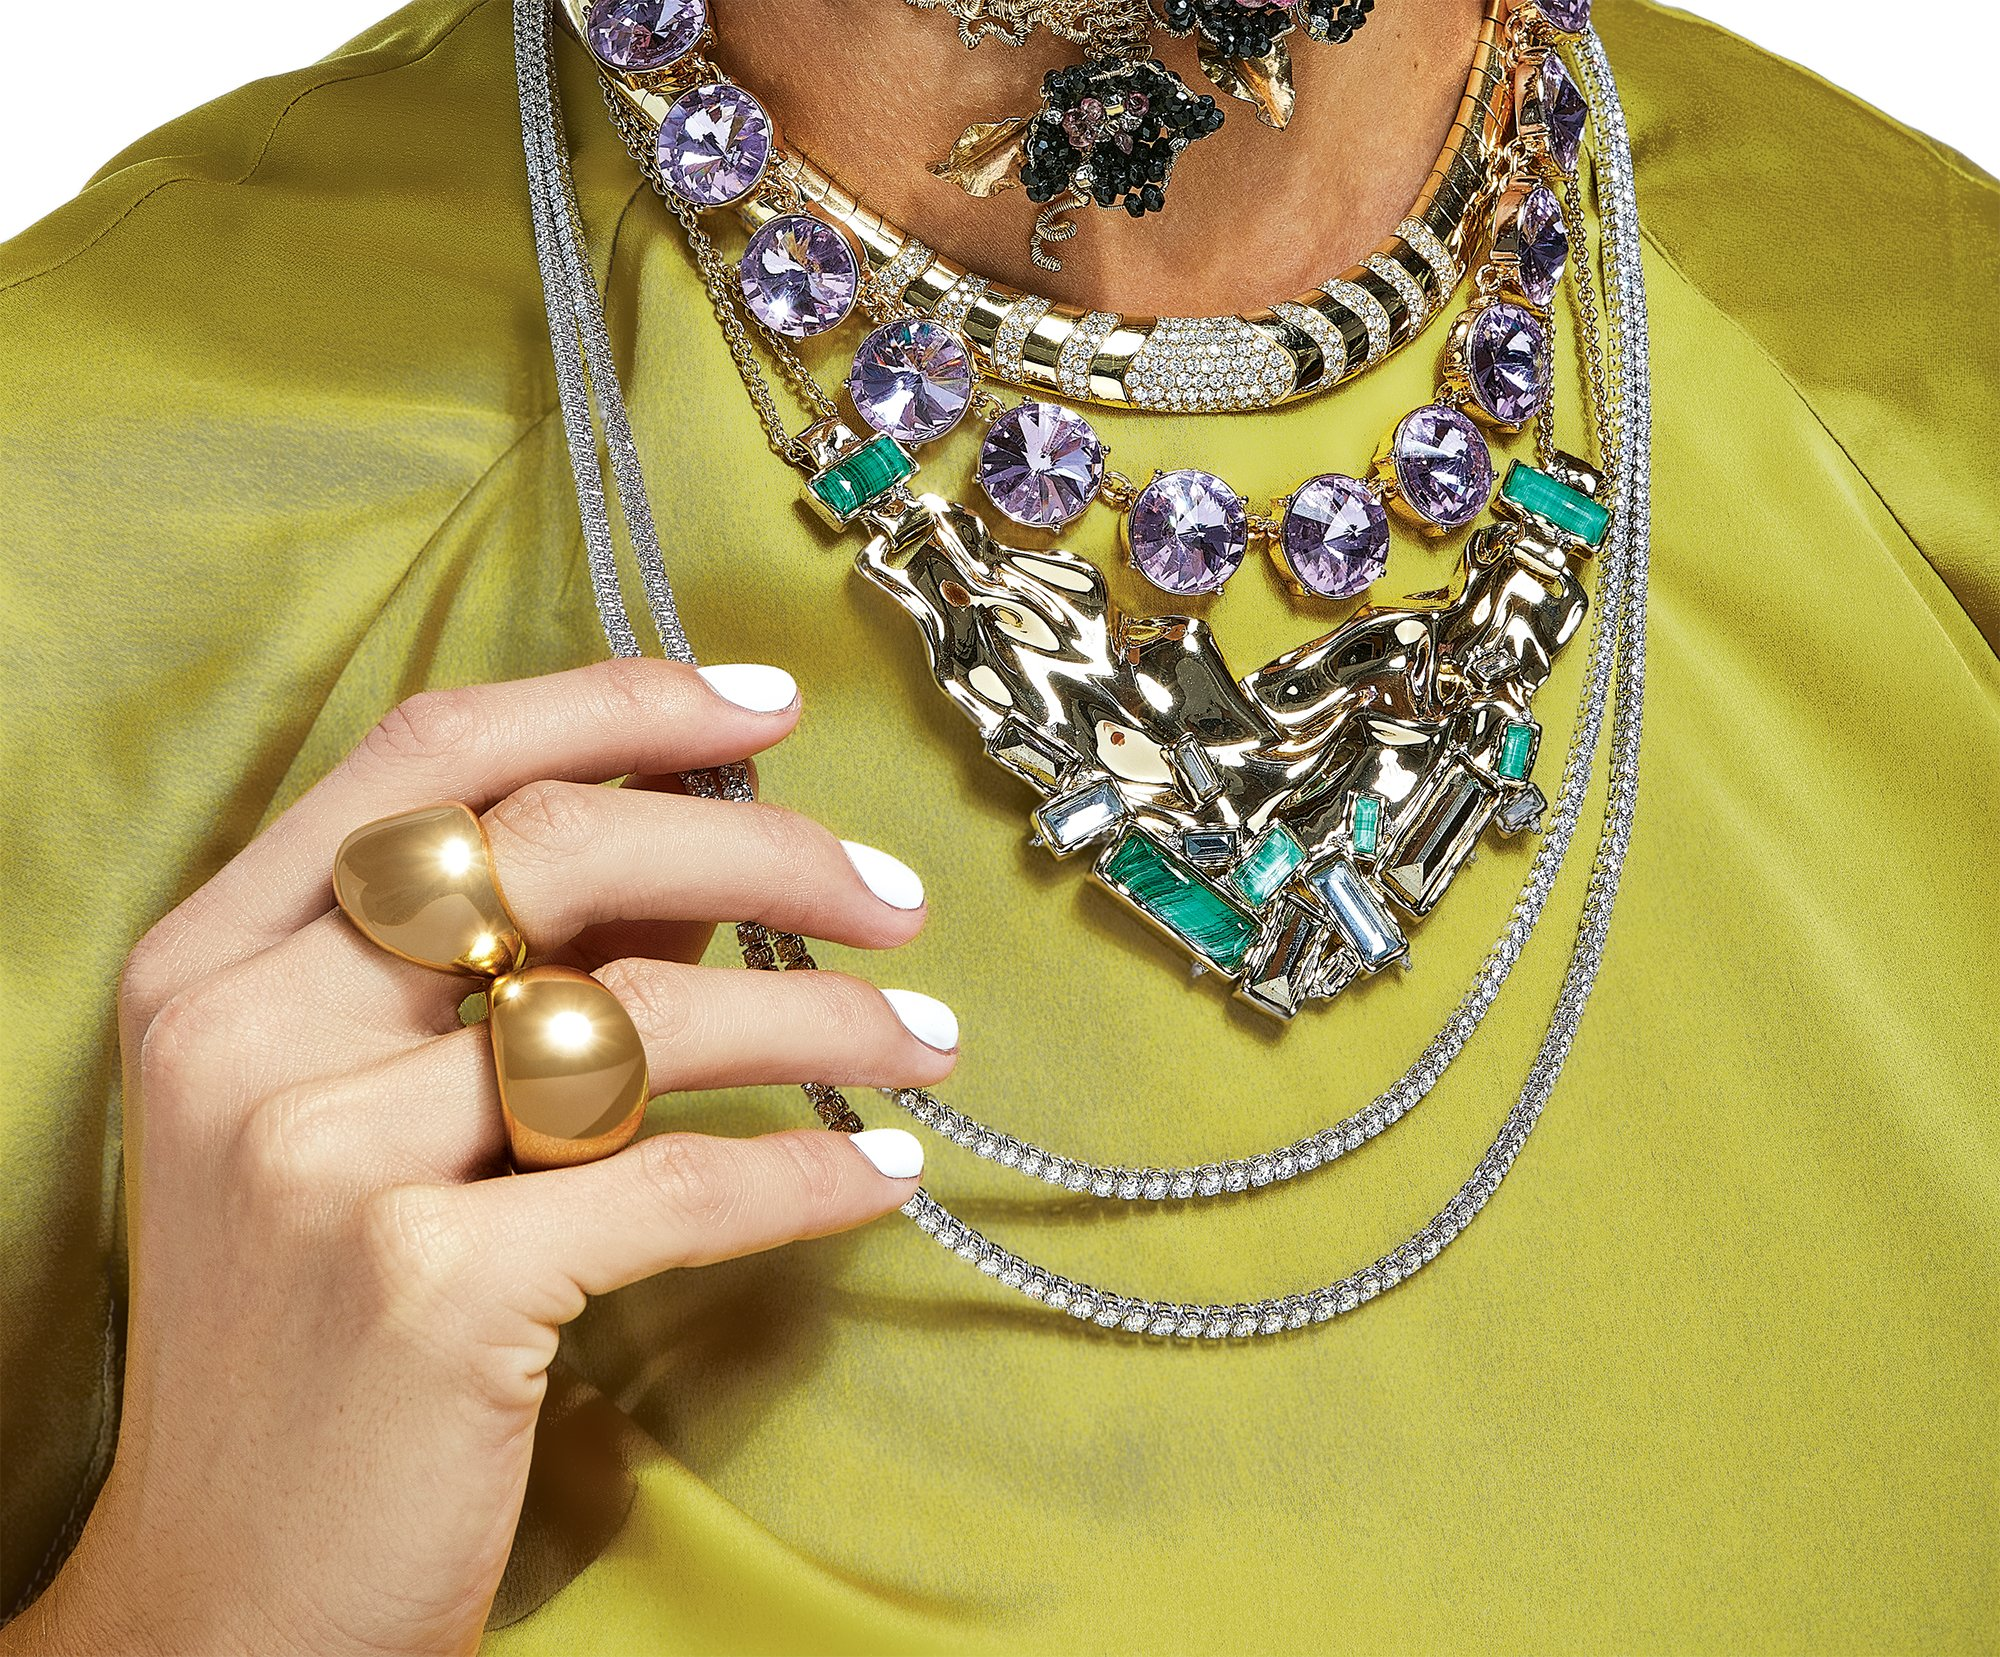 ef74b96a9 4 Glam Ways to Shake Up Your Statement Jewelry Game for the Holidays